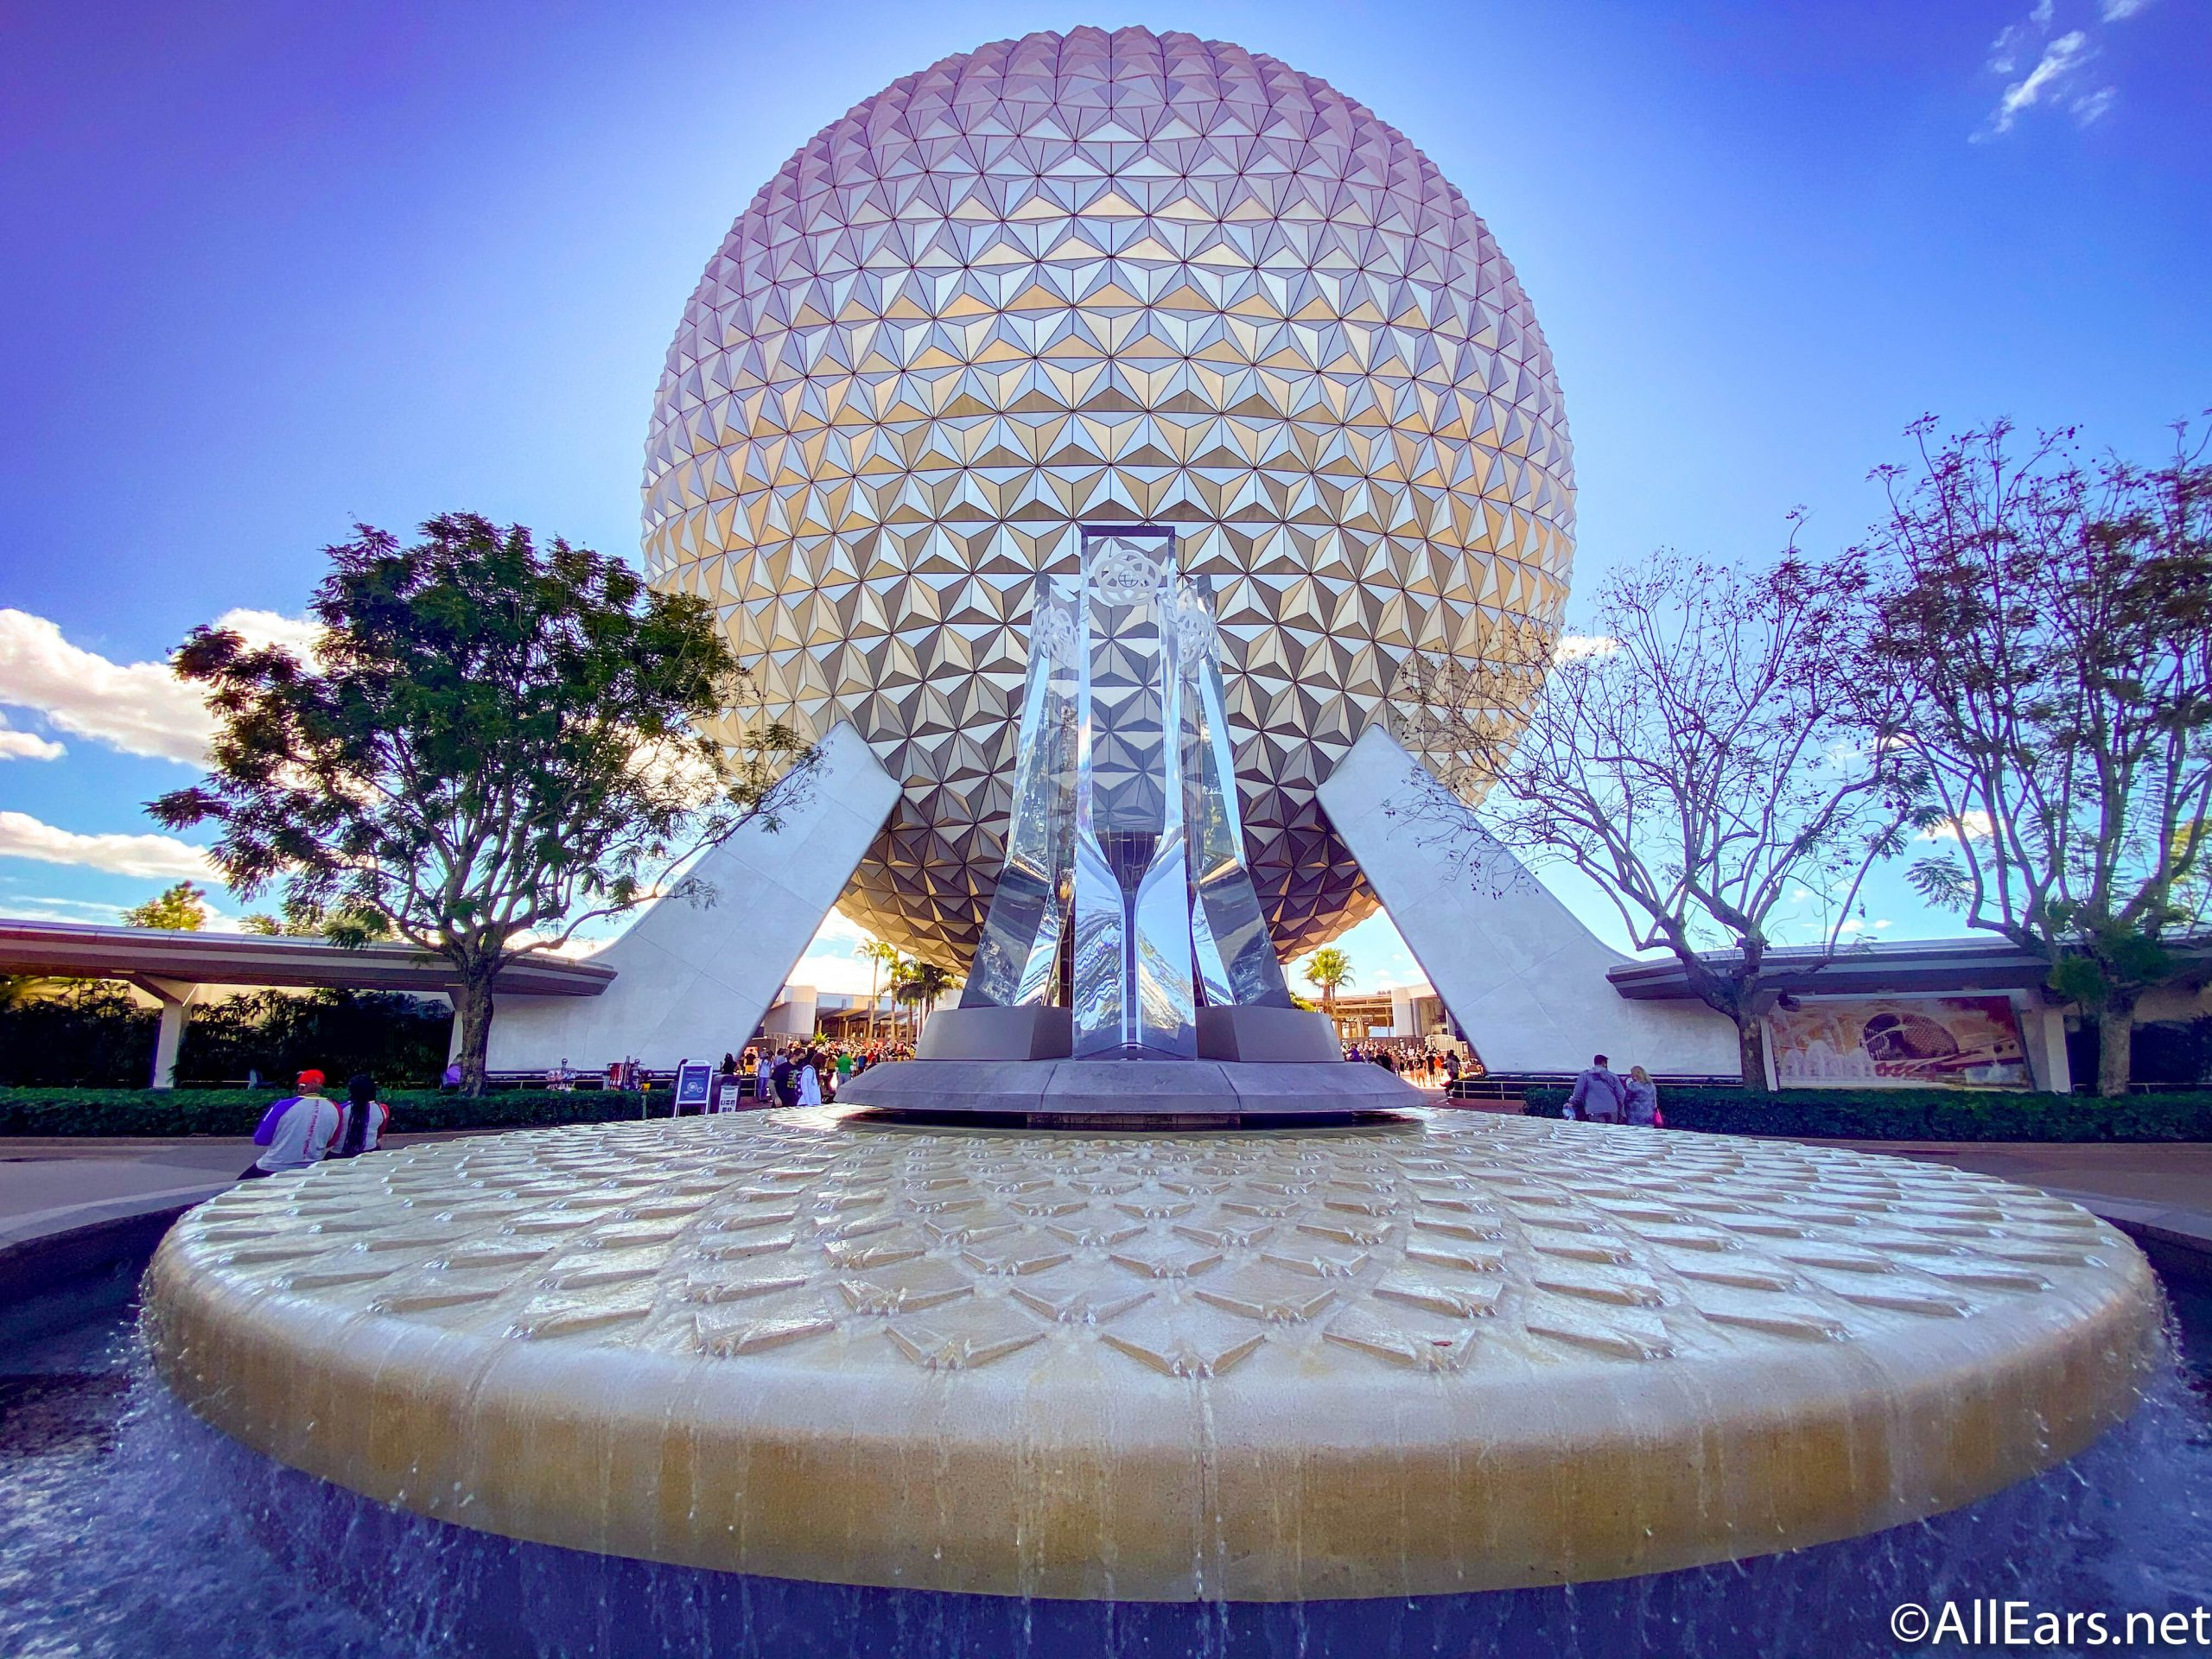 Ranking the Rides of EPCOT